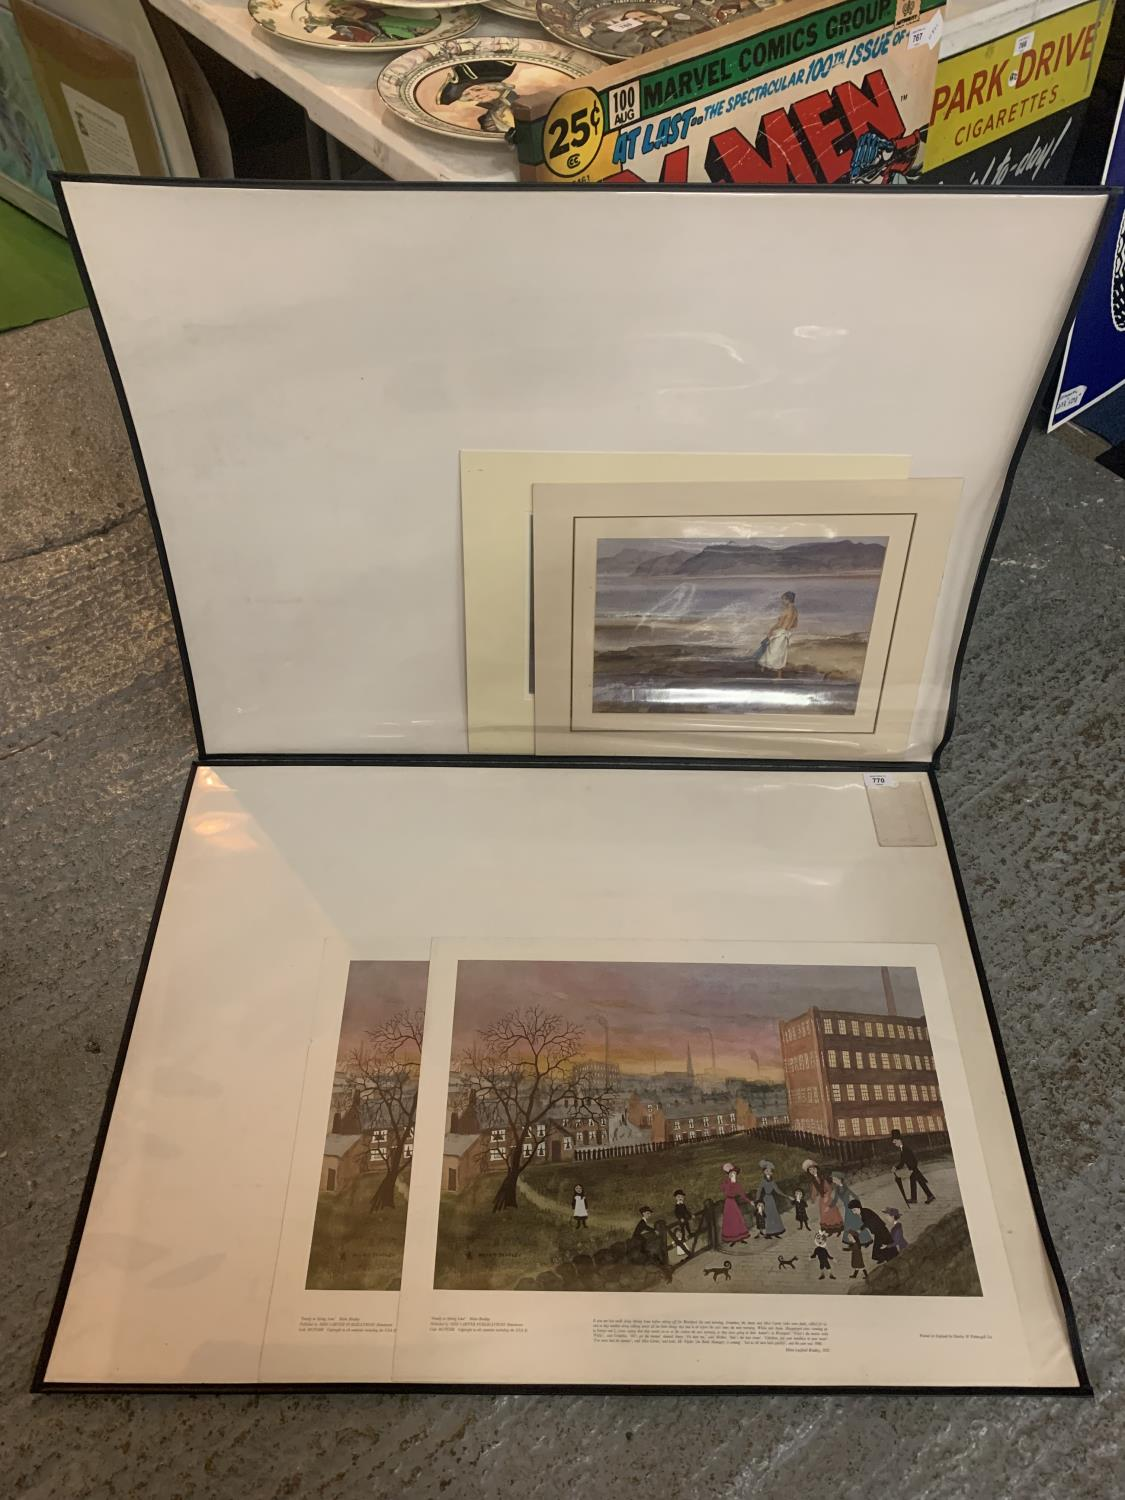 TWO PRINTS OF 'FAMILY IN SPRING LANE' BY HELEN BRADLEY AND TWO SMALLER PRINTS MOUNTED IN LARGE ART